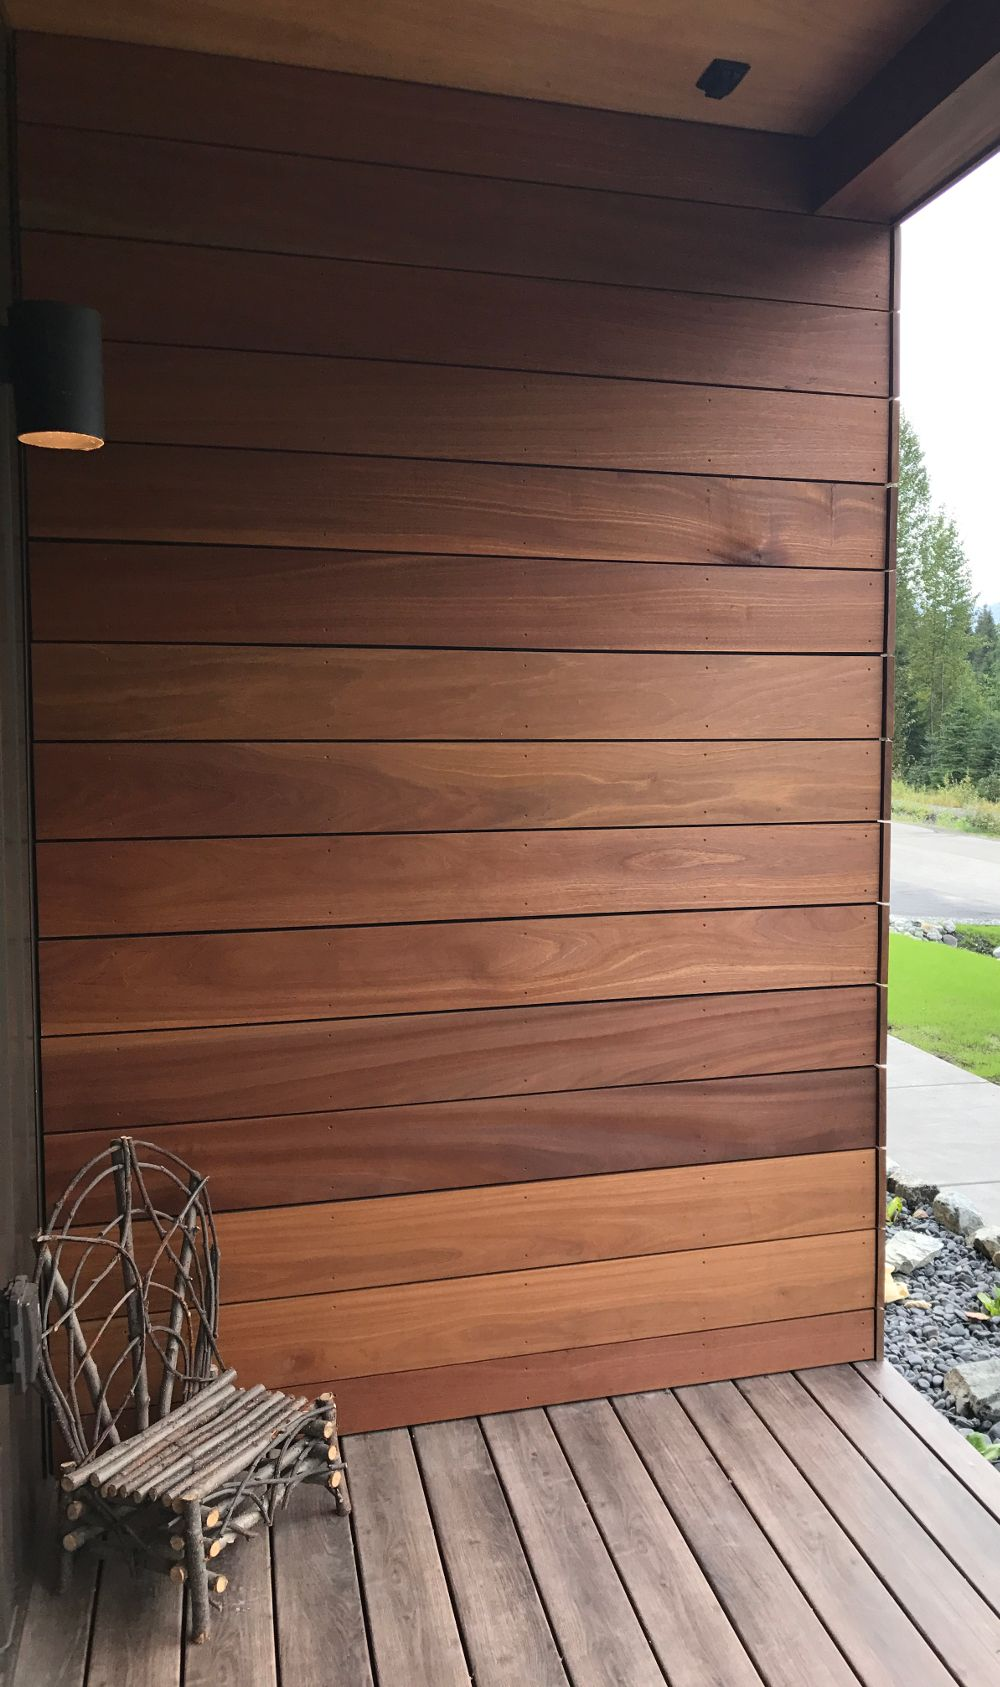 Beautiful Batu Mahogany Hardwood Siding On This Home Carries Into The Front Porch Natural Wood Siding Looks Wood Siding Exterior House Cladding House Exterior